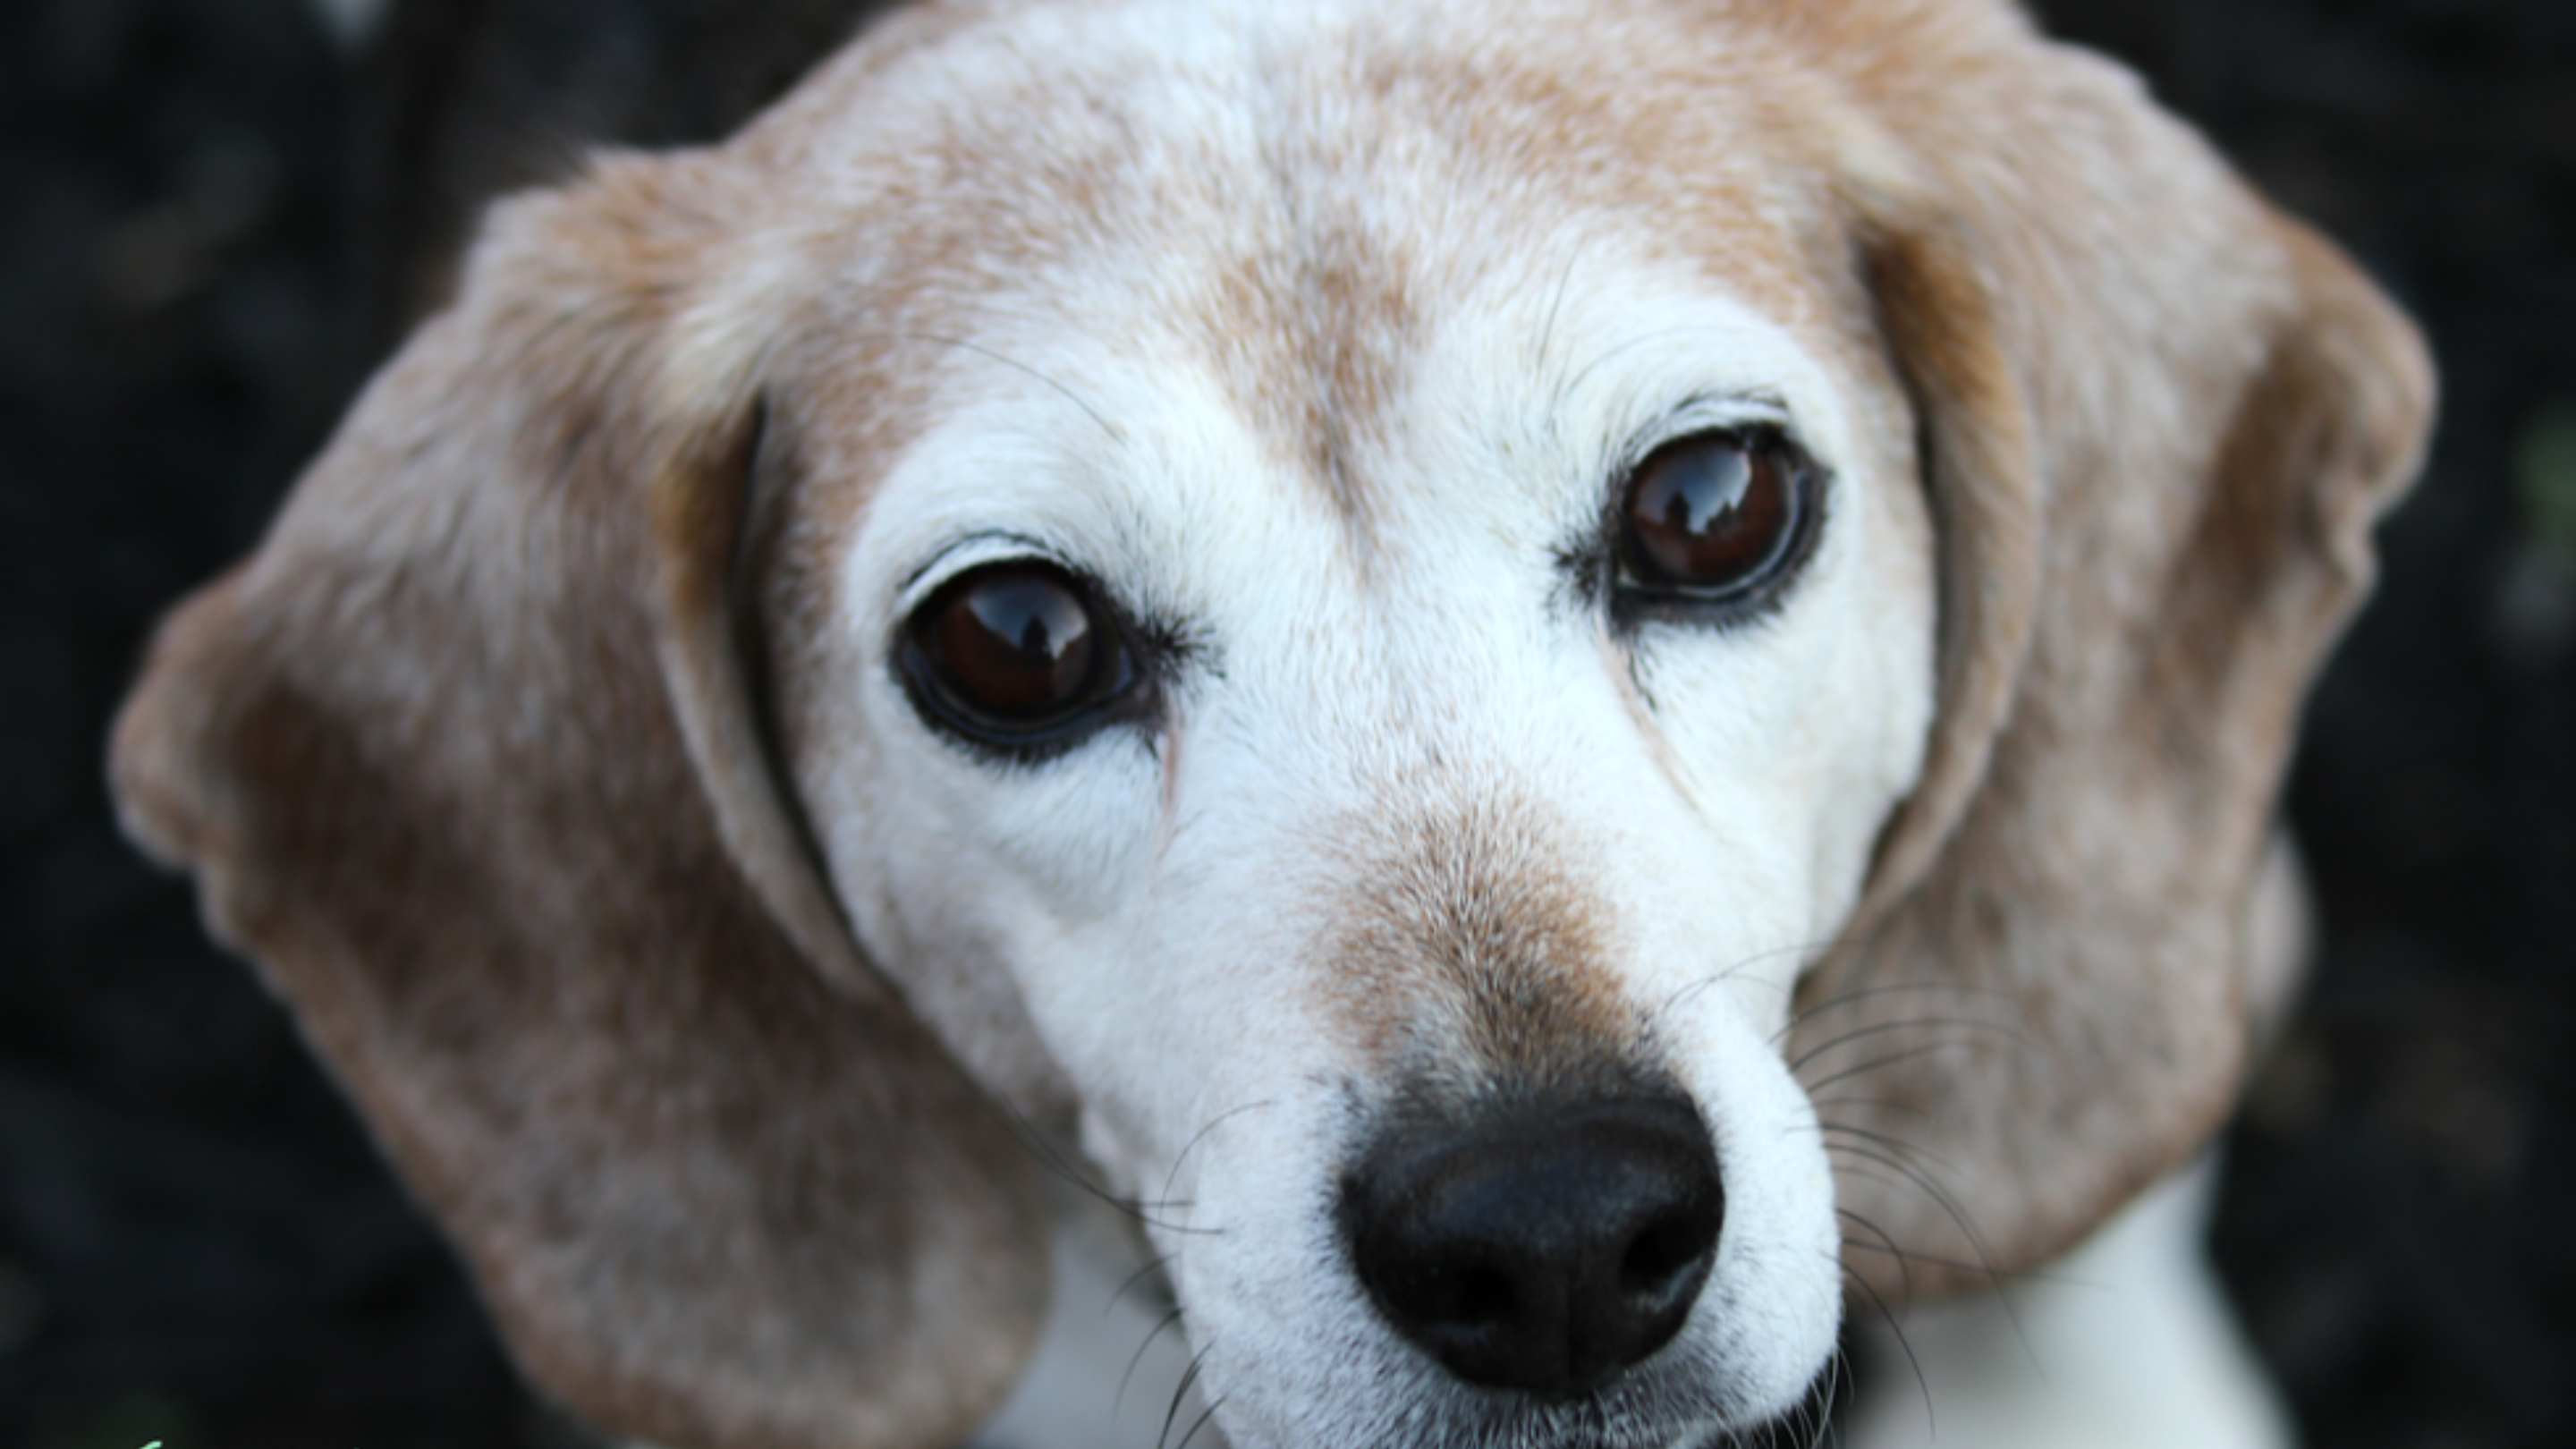 Ellie the beagle looks up, a sweet expression on her greying face